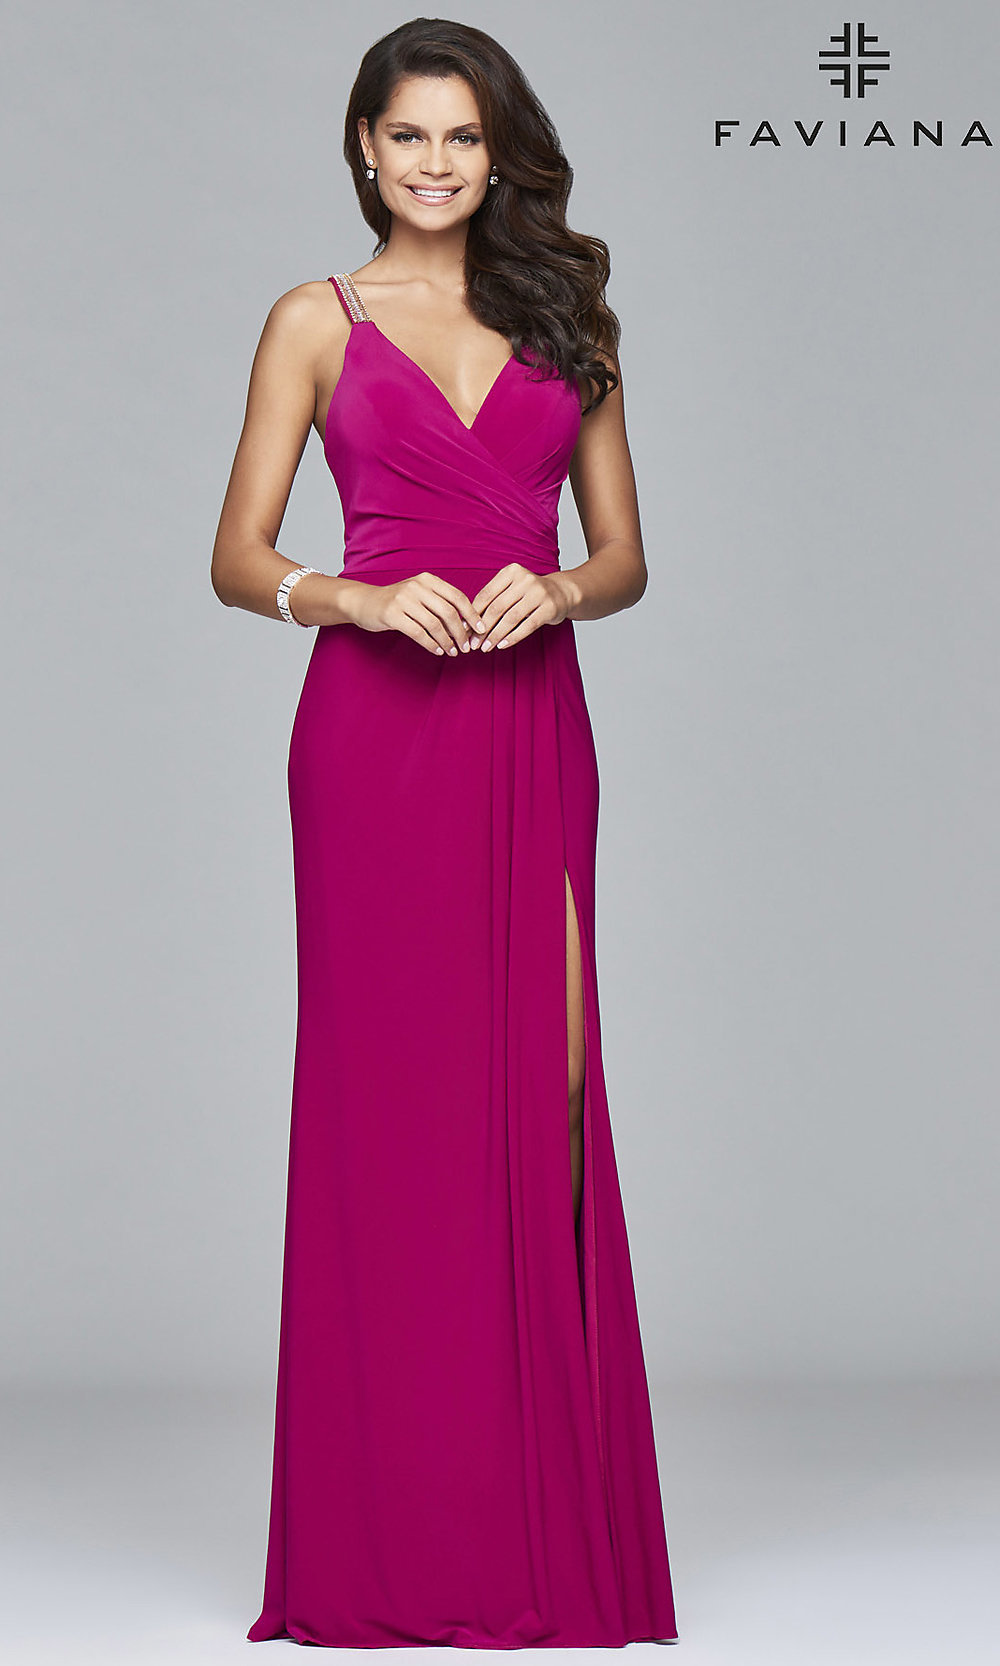 Long Faviana Formal Prom Dress With V Neck Promgirl